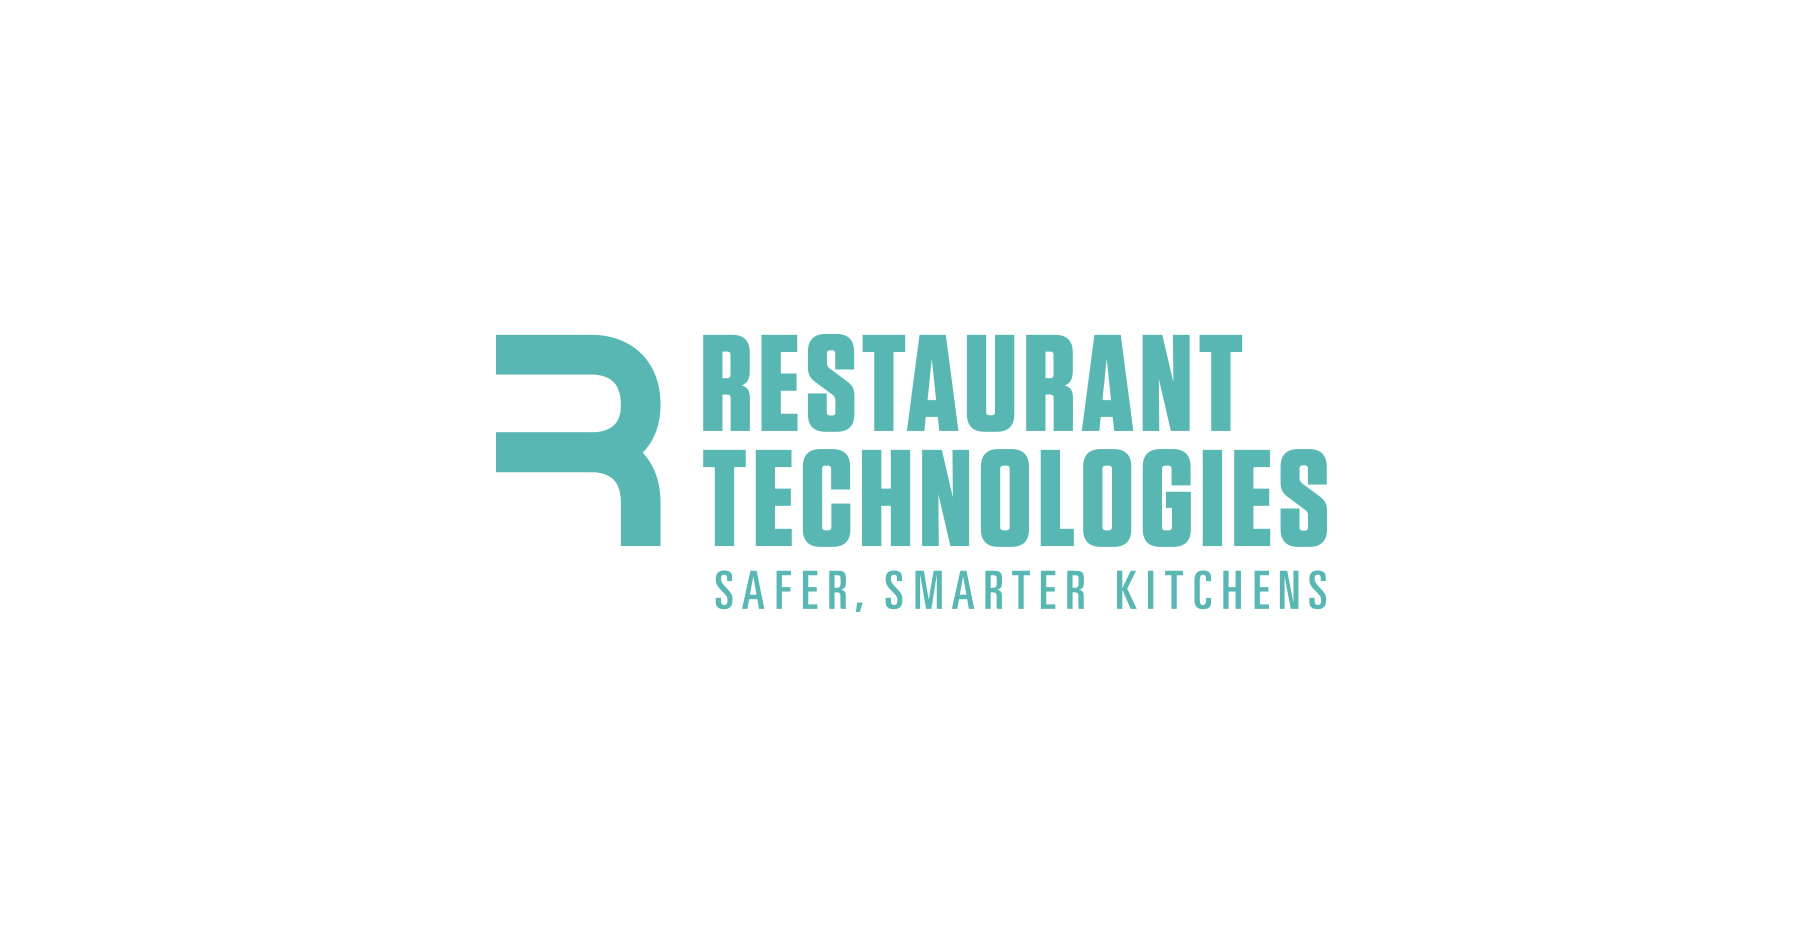 Restaurant Technologies - Restaurant Leadership Conference